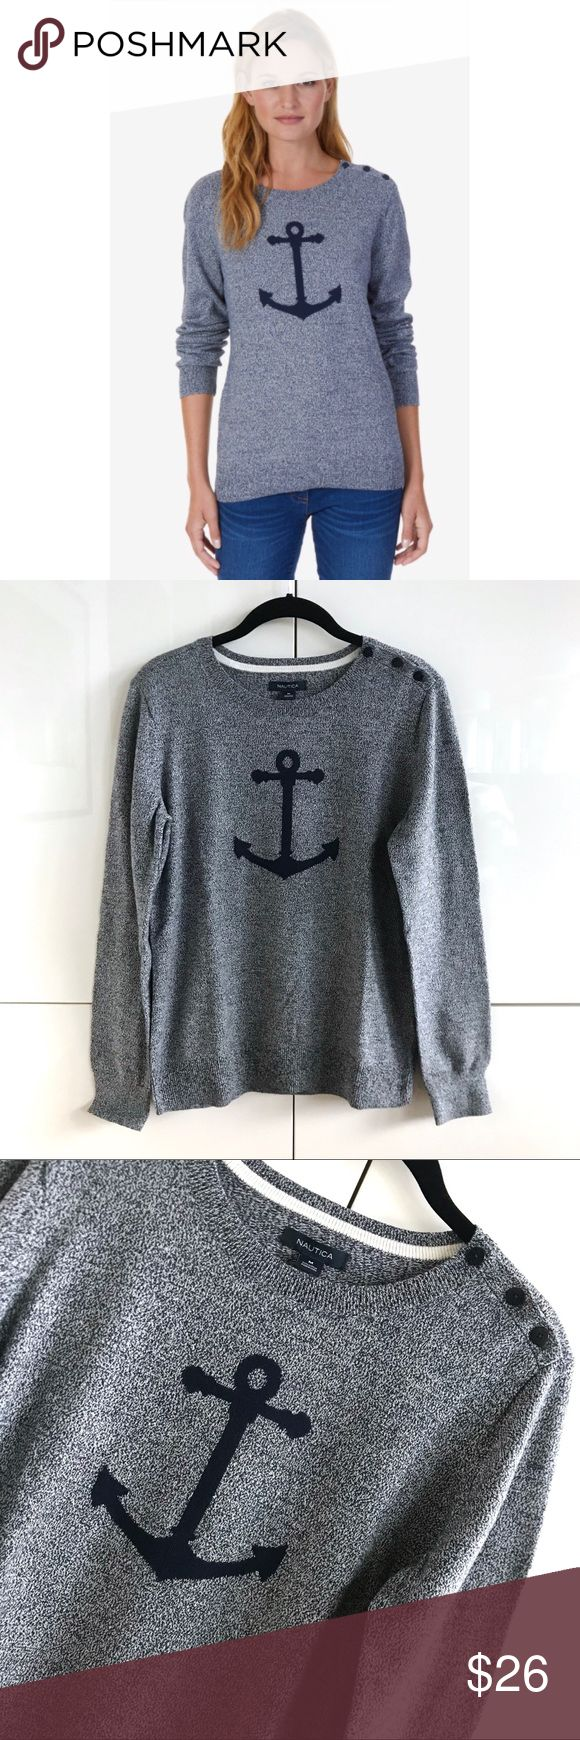 🆕 NWT Nautica Long Sleeve Intarsia Anchor Sweater 🆕 NWT Nautica Long Sleeve Intarsia Anchor Sweater.  Size medium.  100% cotton.  Brand new with tags.  Perfect condition; flawless. Nautica Sweaters